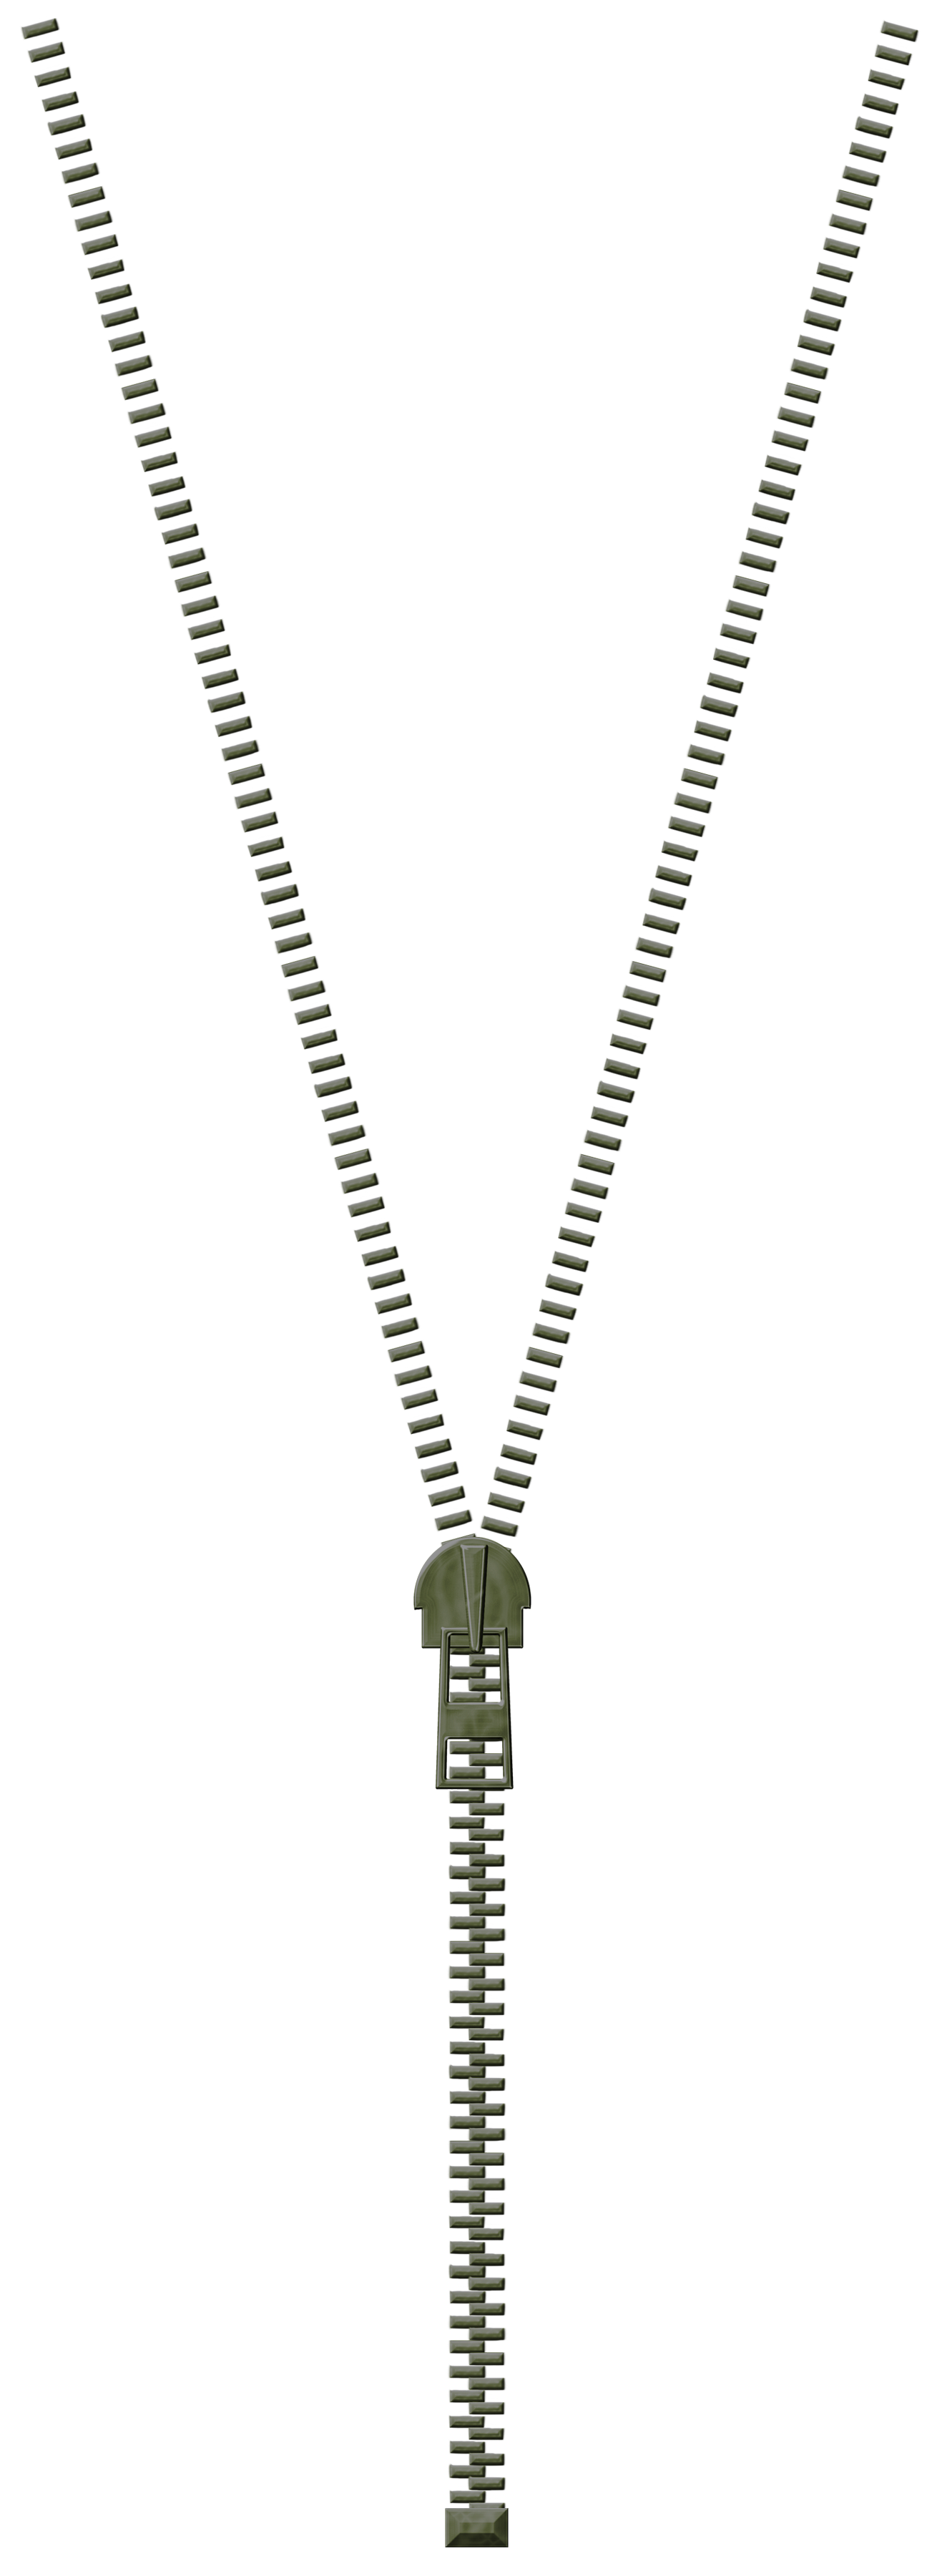 Zipper PNG images free download.